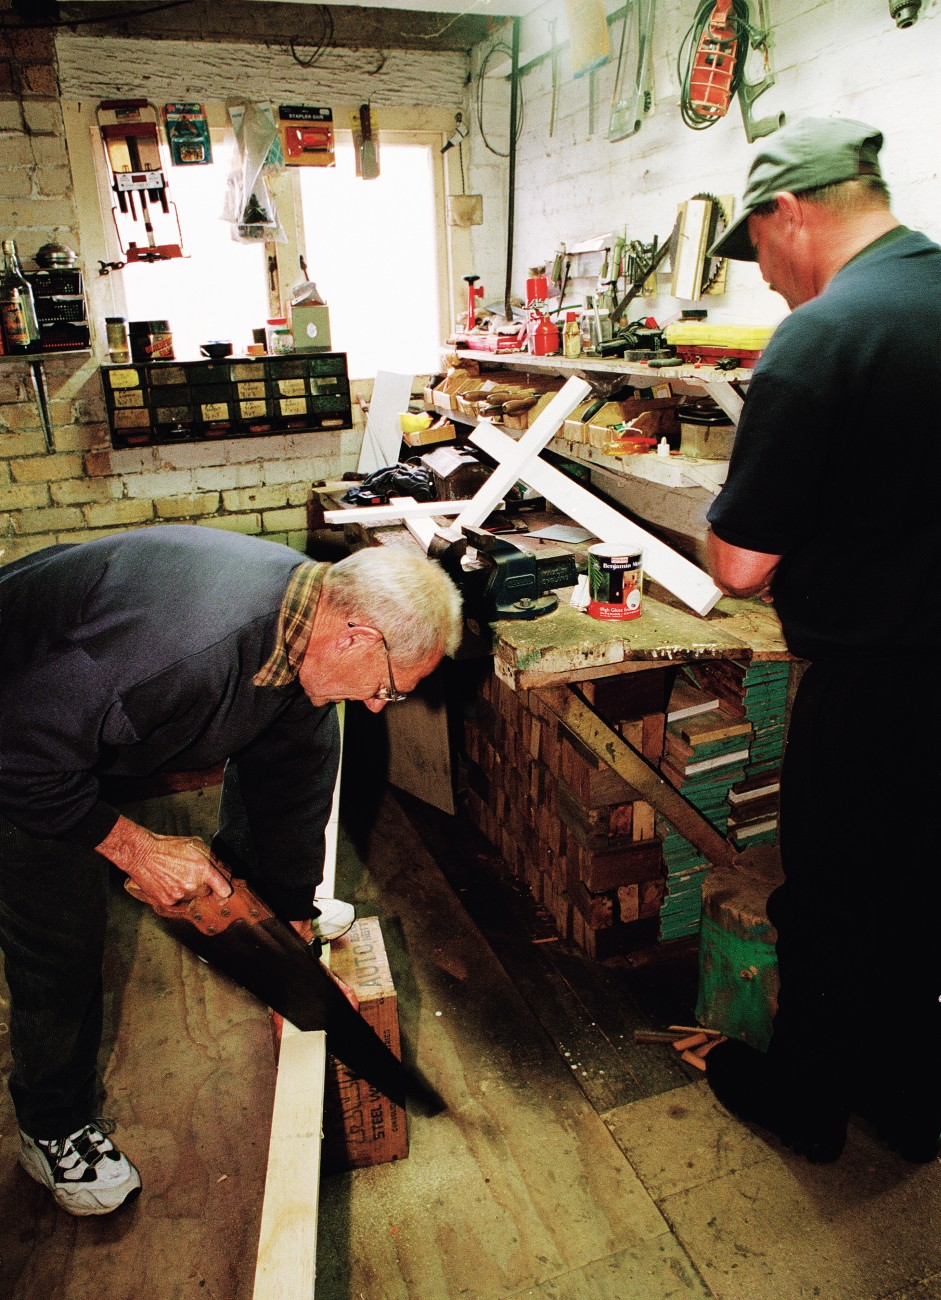 Alan Horrox, with his sons David and Bruce, makes crosses in the basement workshop of Alan's Huntly home.